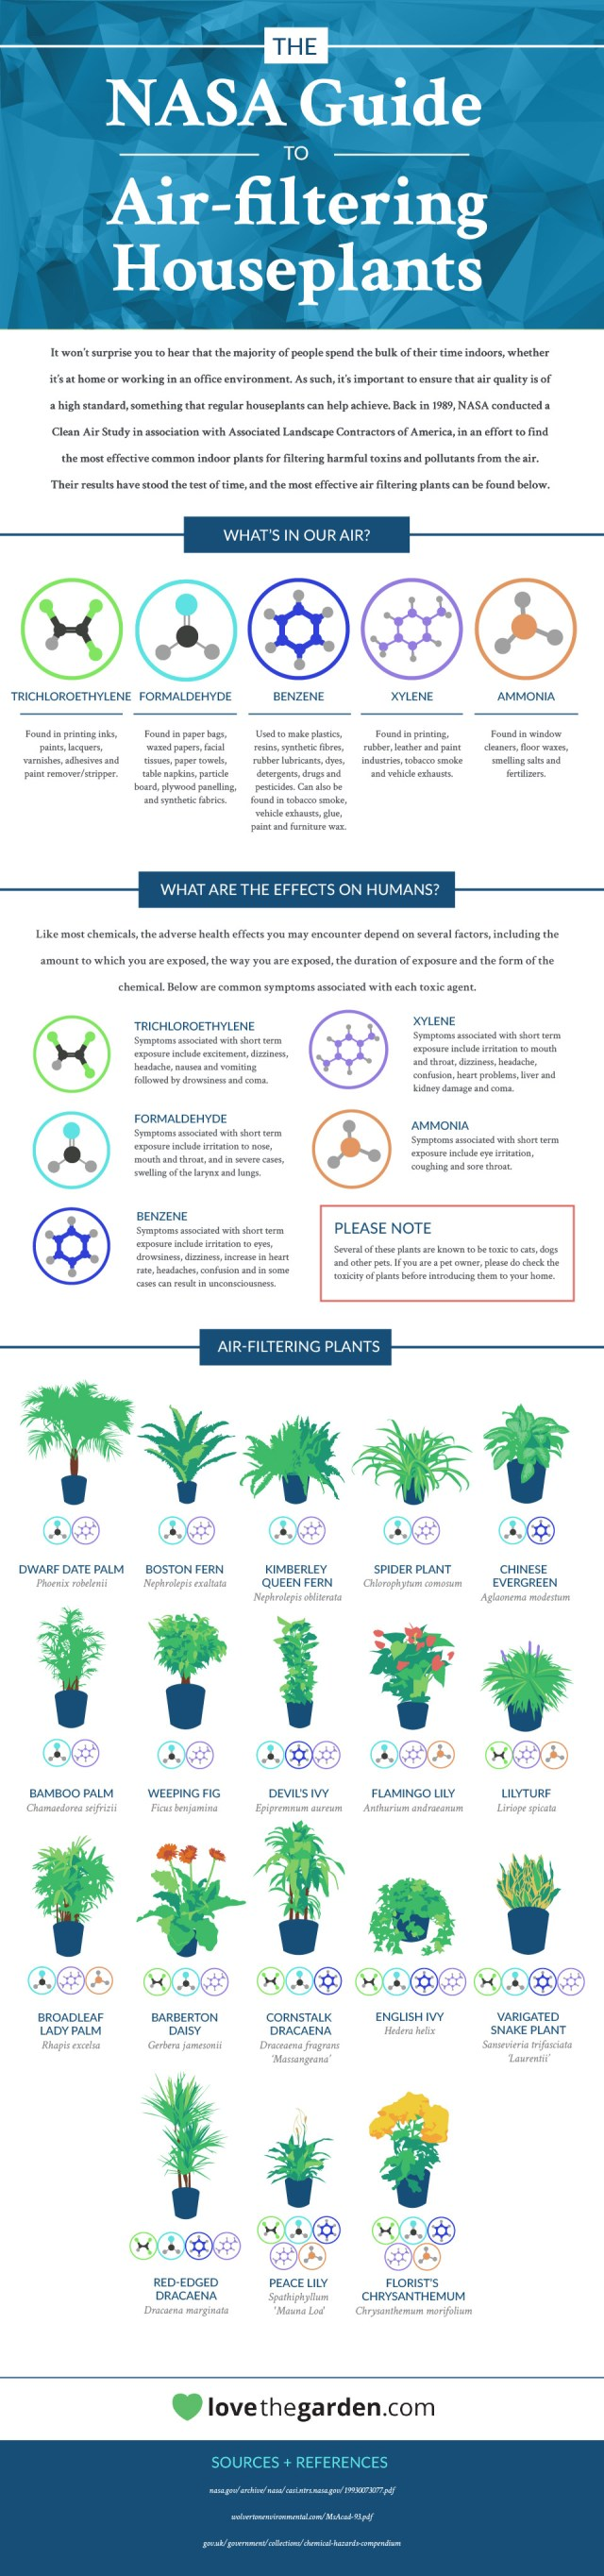 NASA: These 18 Houseplants Help Purify Your Home's Air